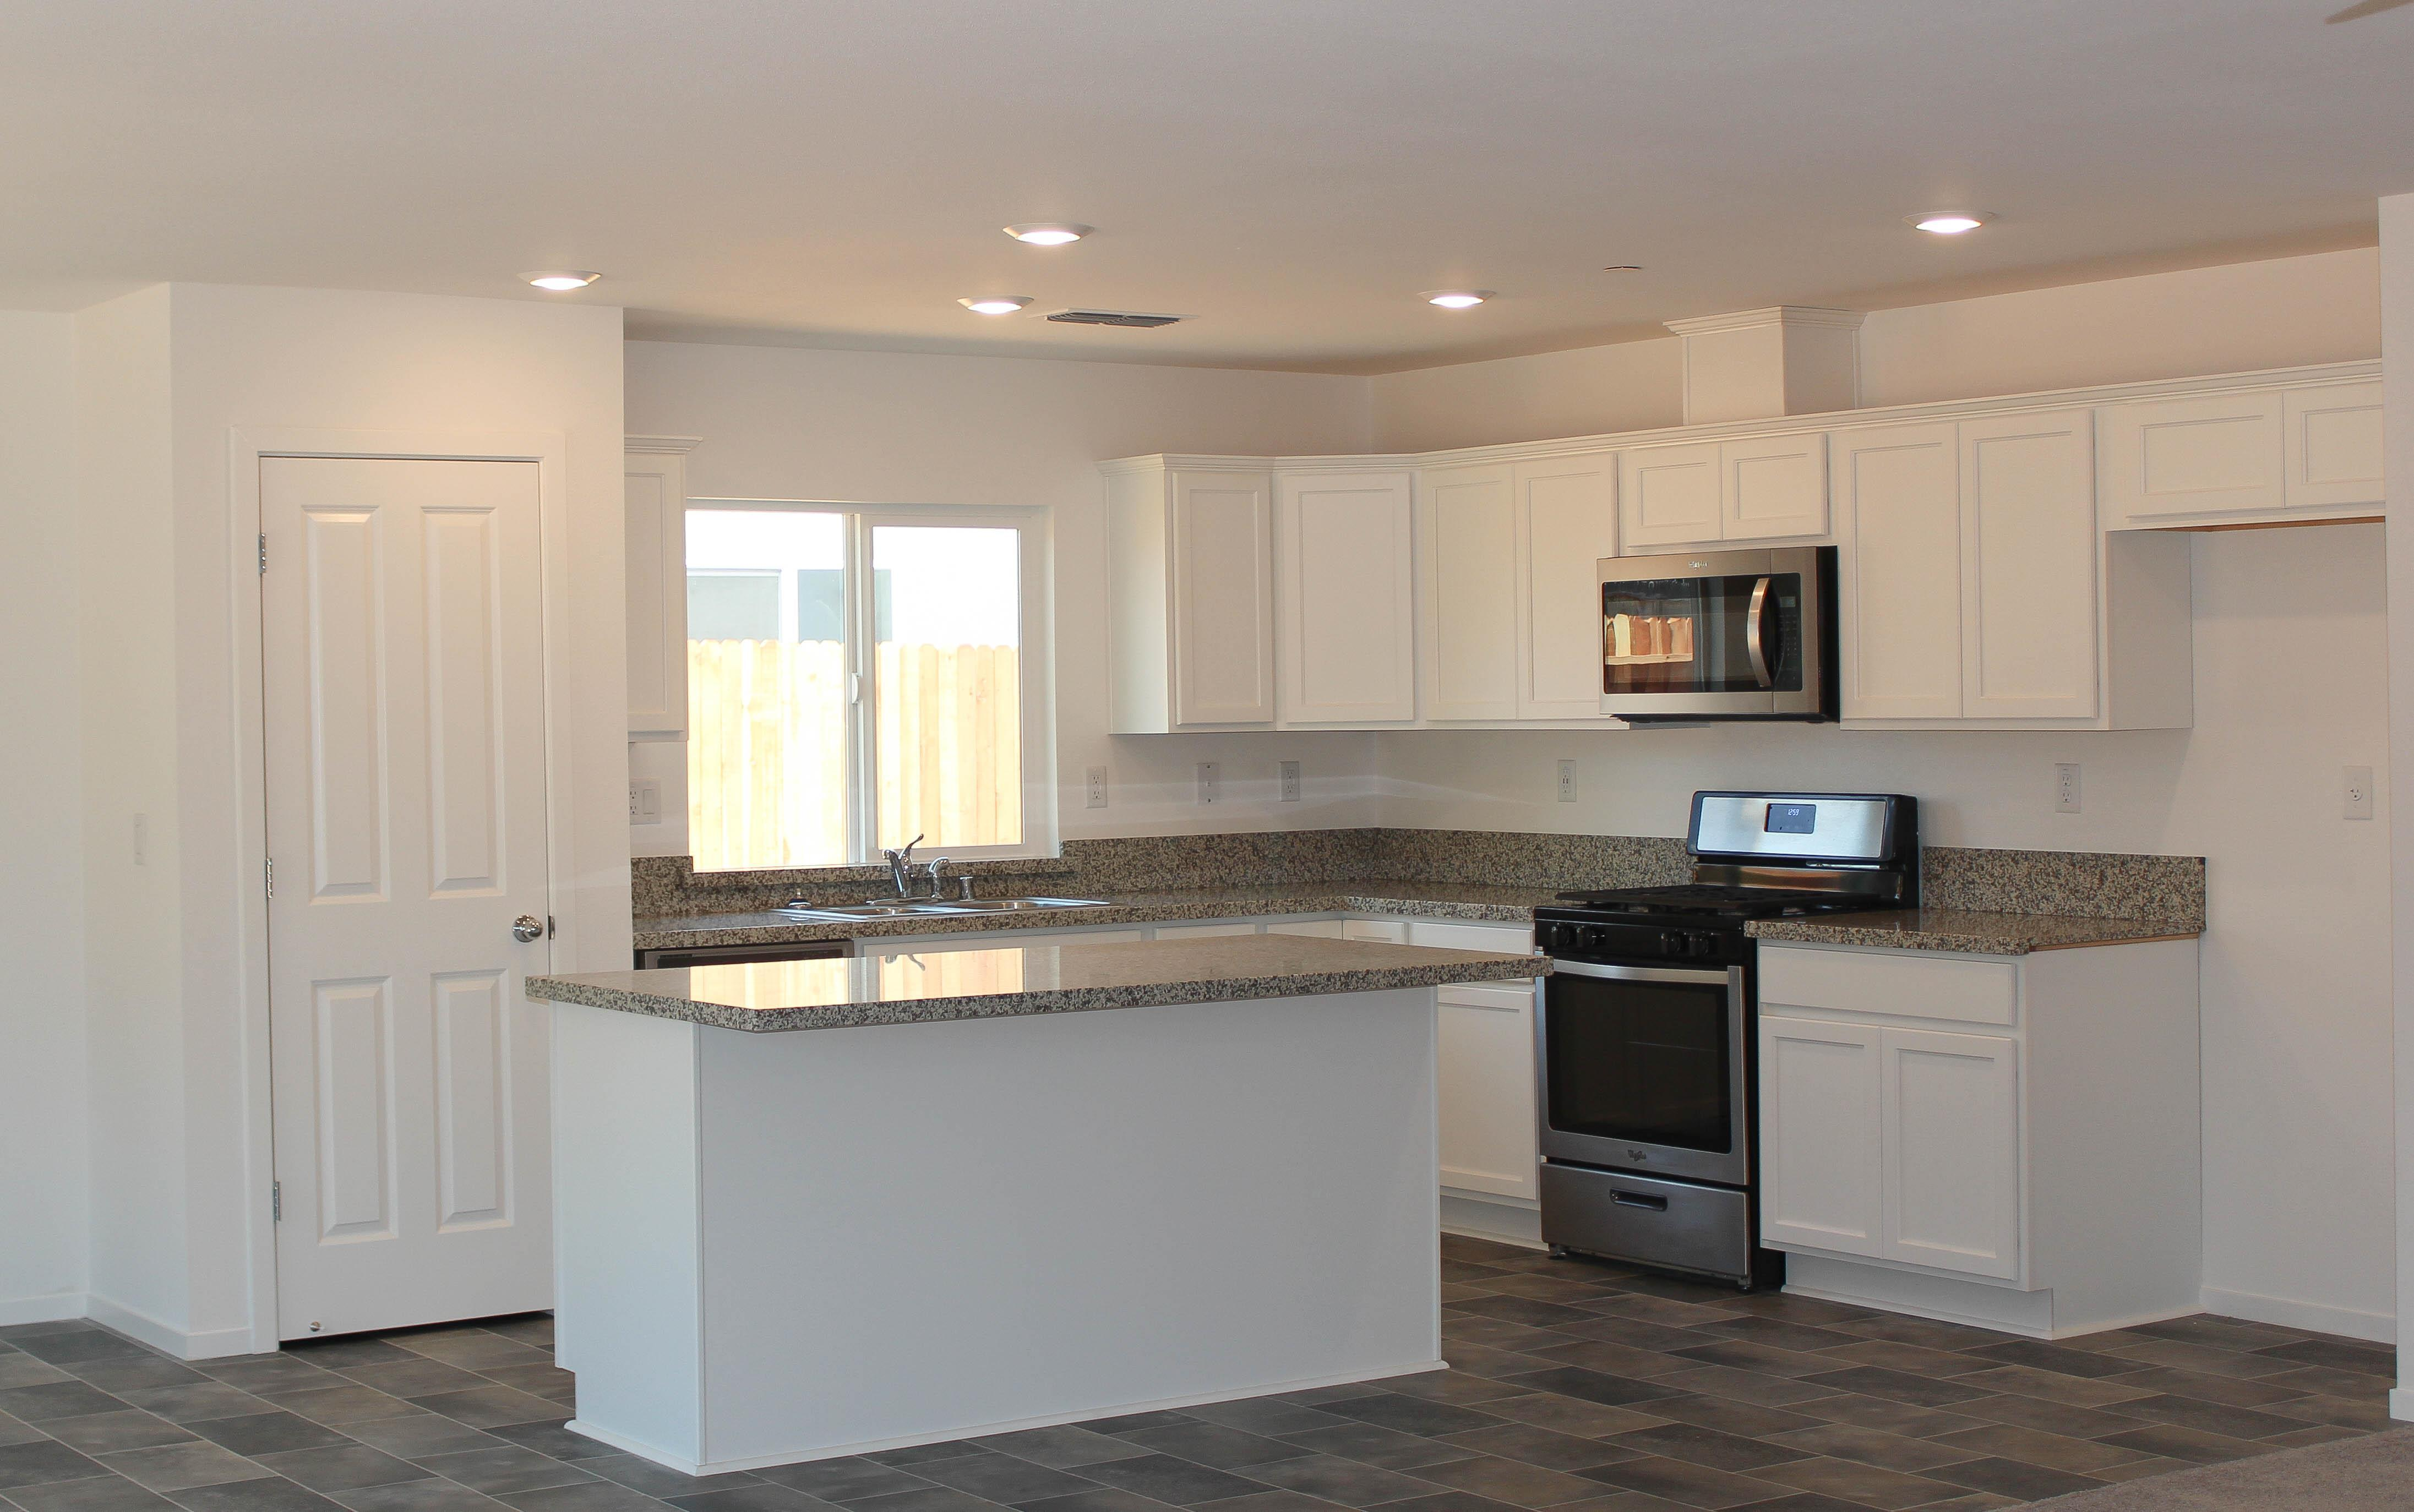 Kitchen featured in the 3A By Crowne Communities in Chico, CA